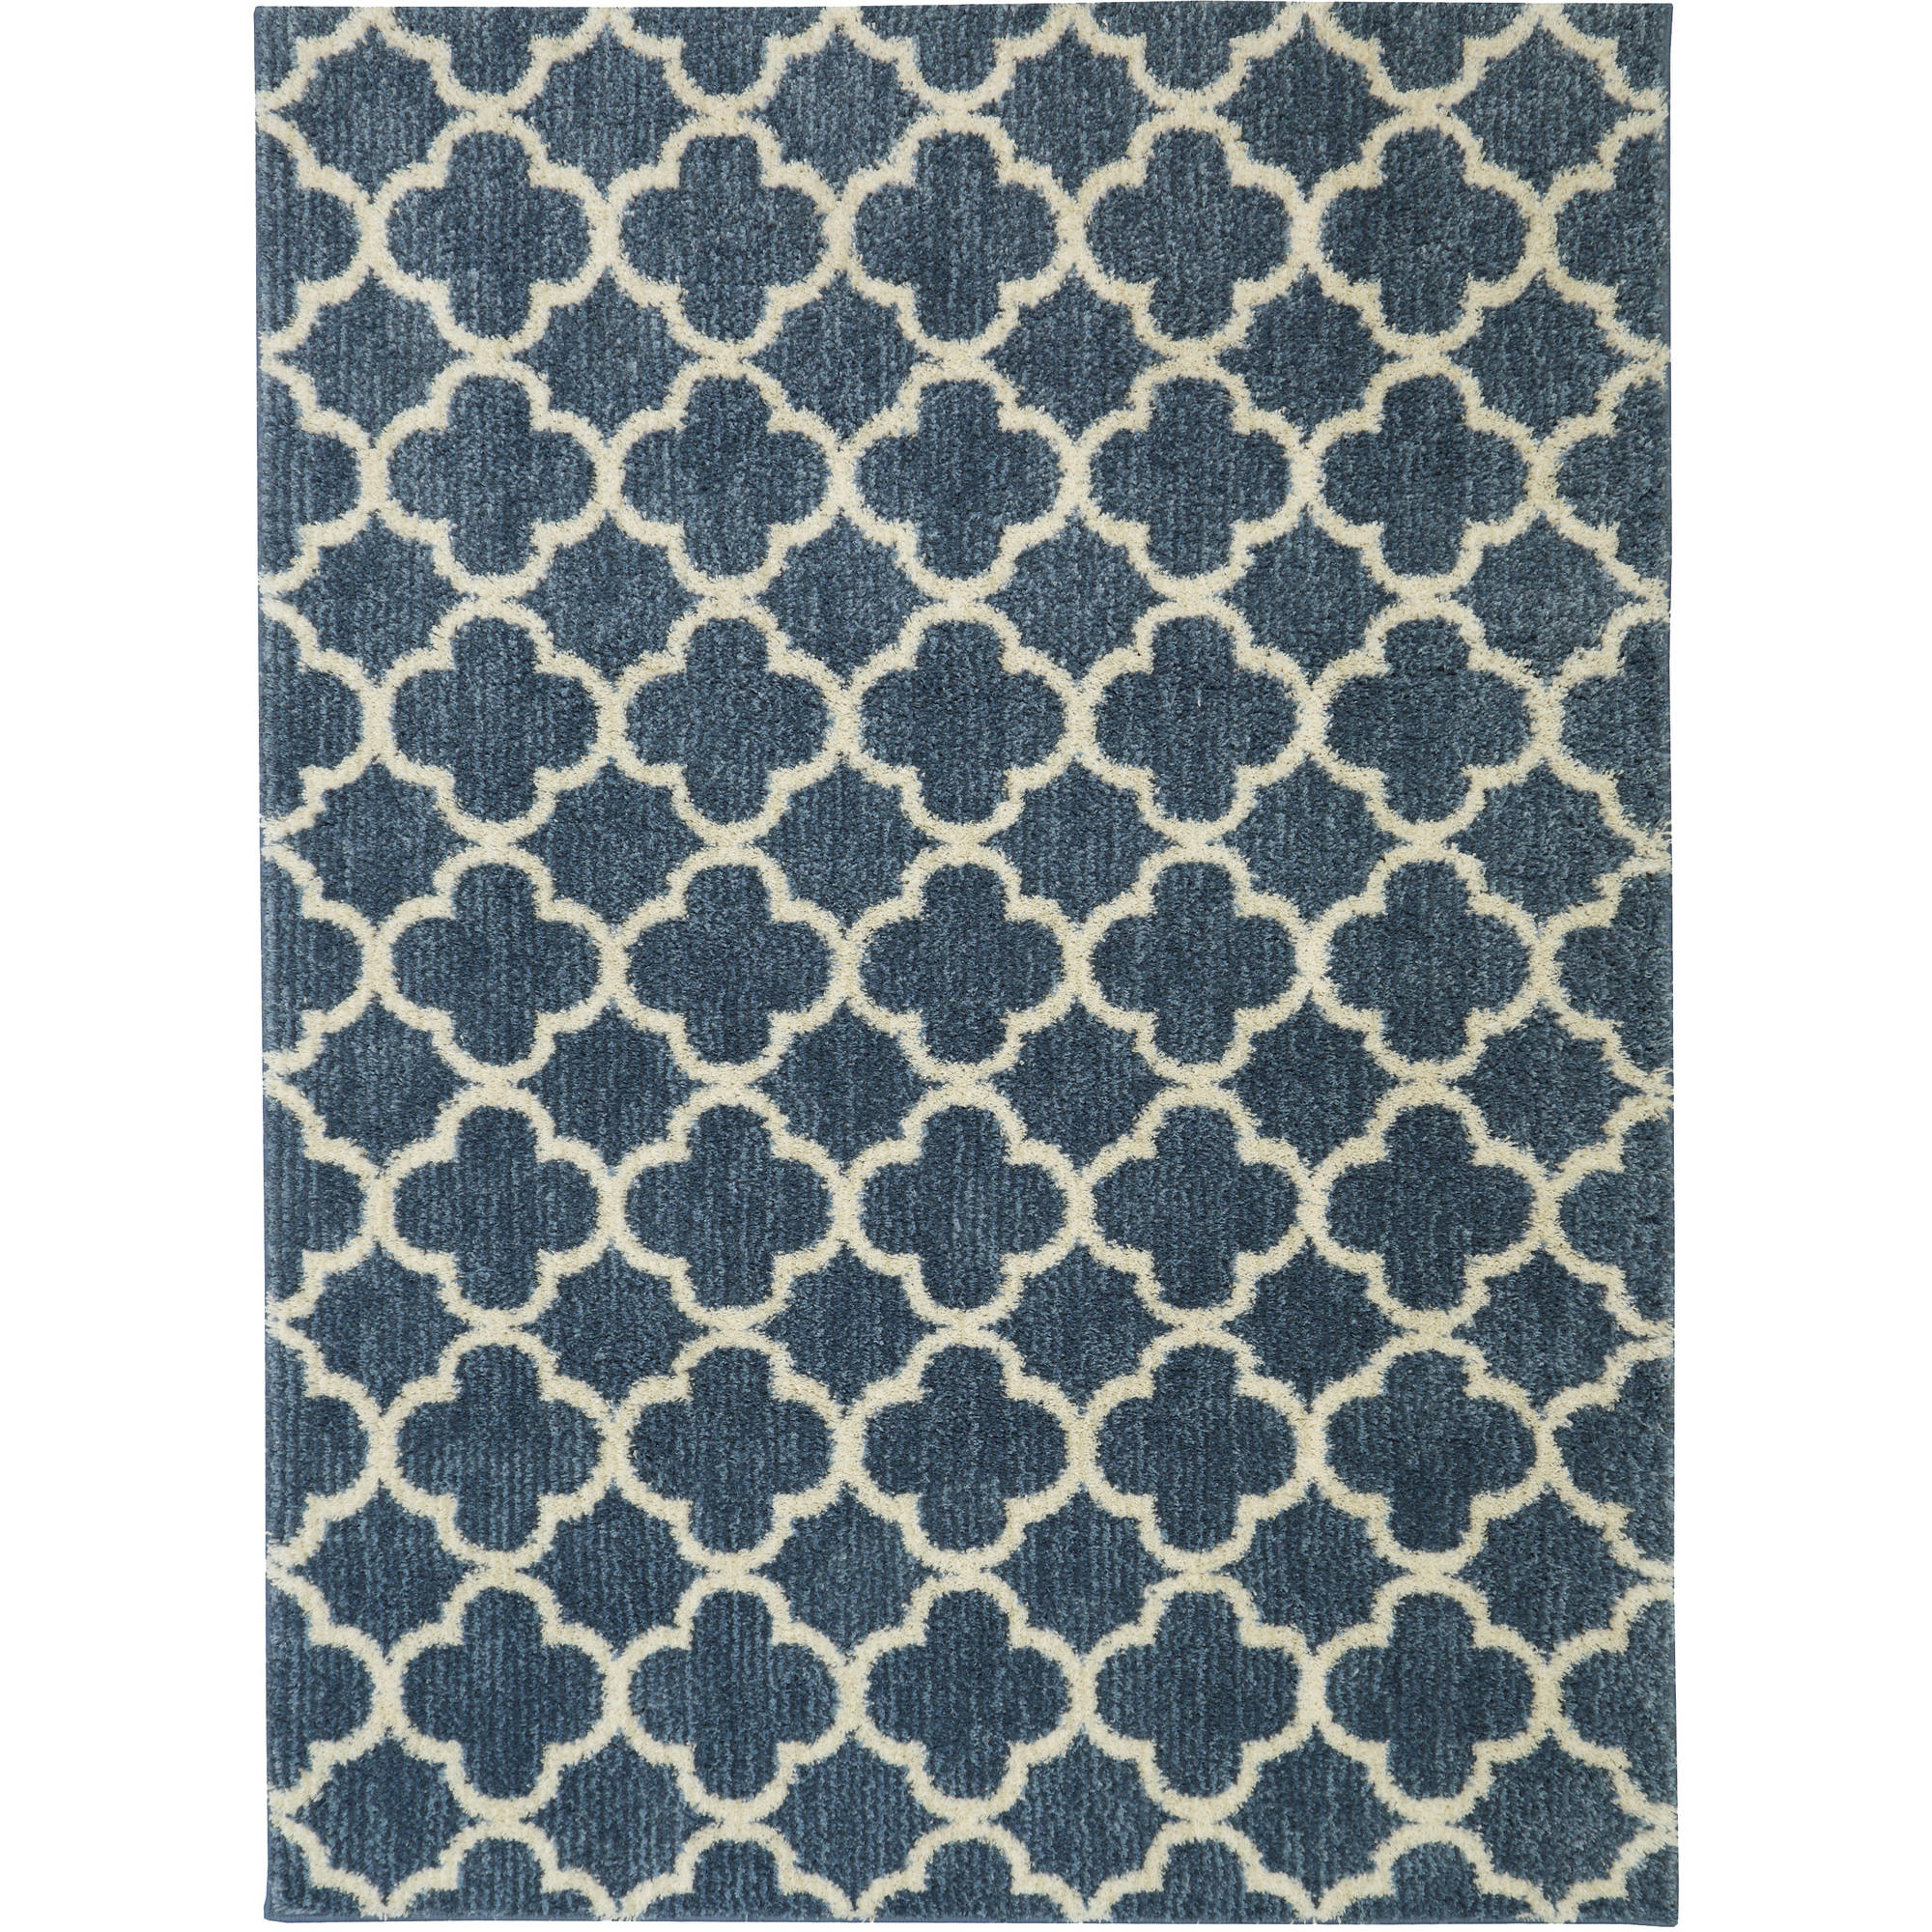 Mohawk Home Teal Fret Area Rug Available In Multiple Sizes   Walmart.com